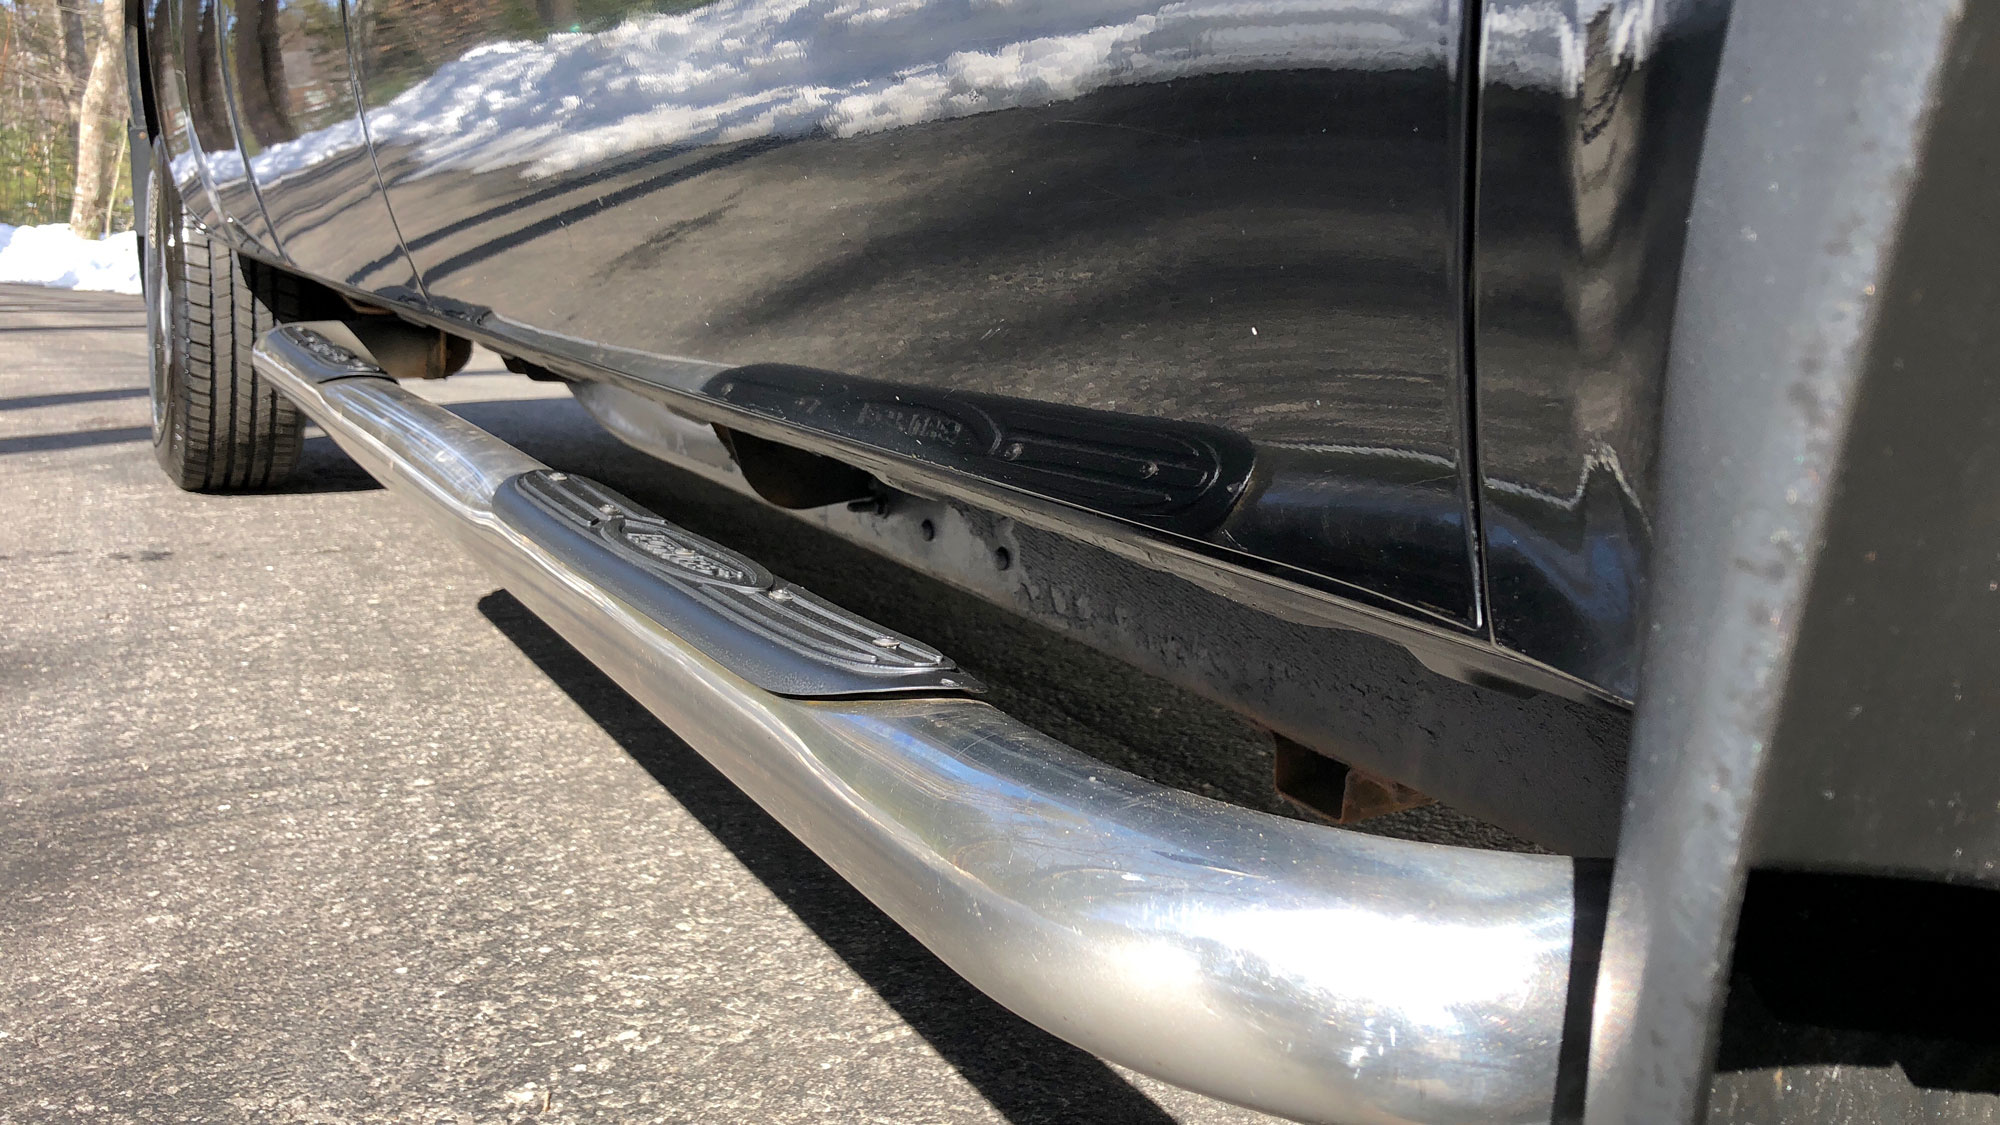 2007 Chevrolet Silverado 2500hd Duramax Diesel Z71 4x4 Sold Fuel Filter Overall This Heavy Duty Is In Very Good Condition The Exterior Paint Shines Nicely With No Fading There Are Some Light Scratches And A